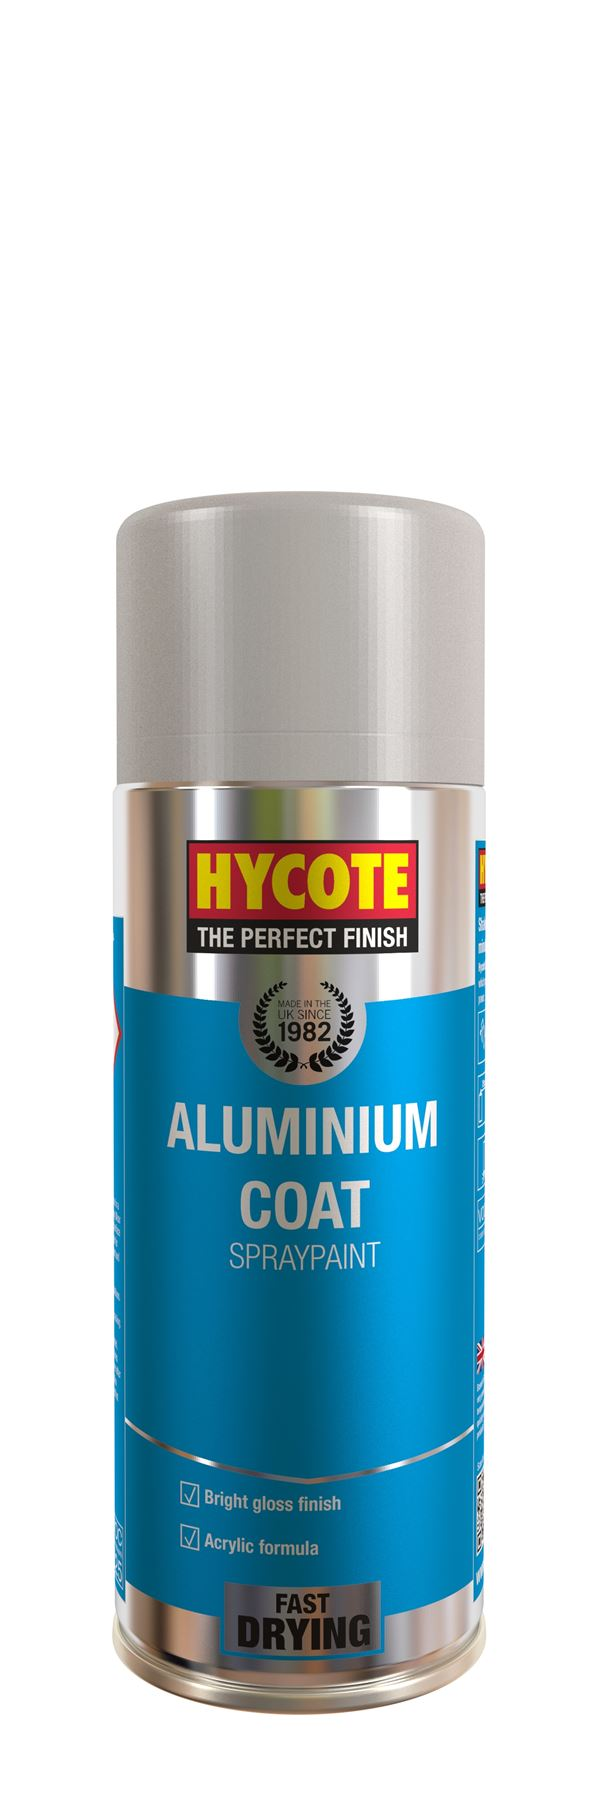 Hycote Aluminium Coat Paint - 400ml